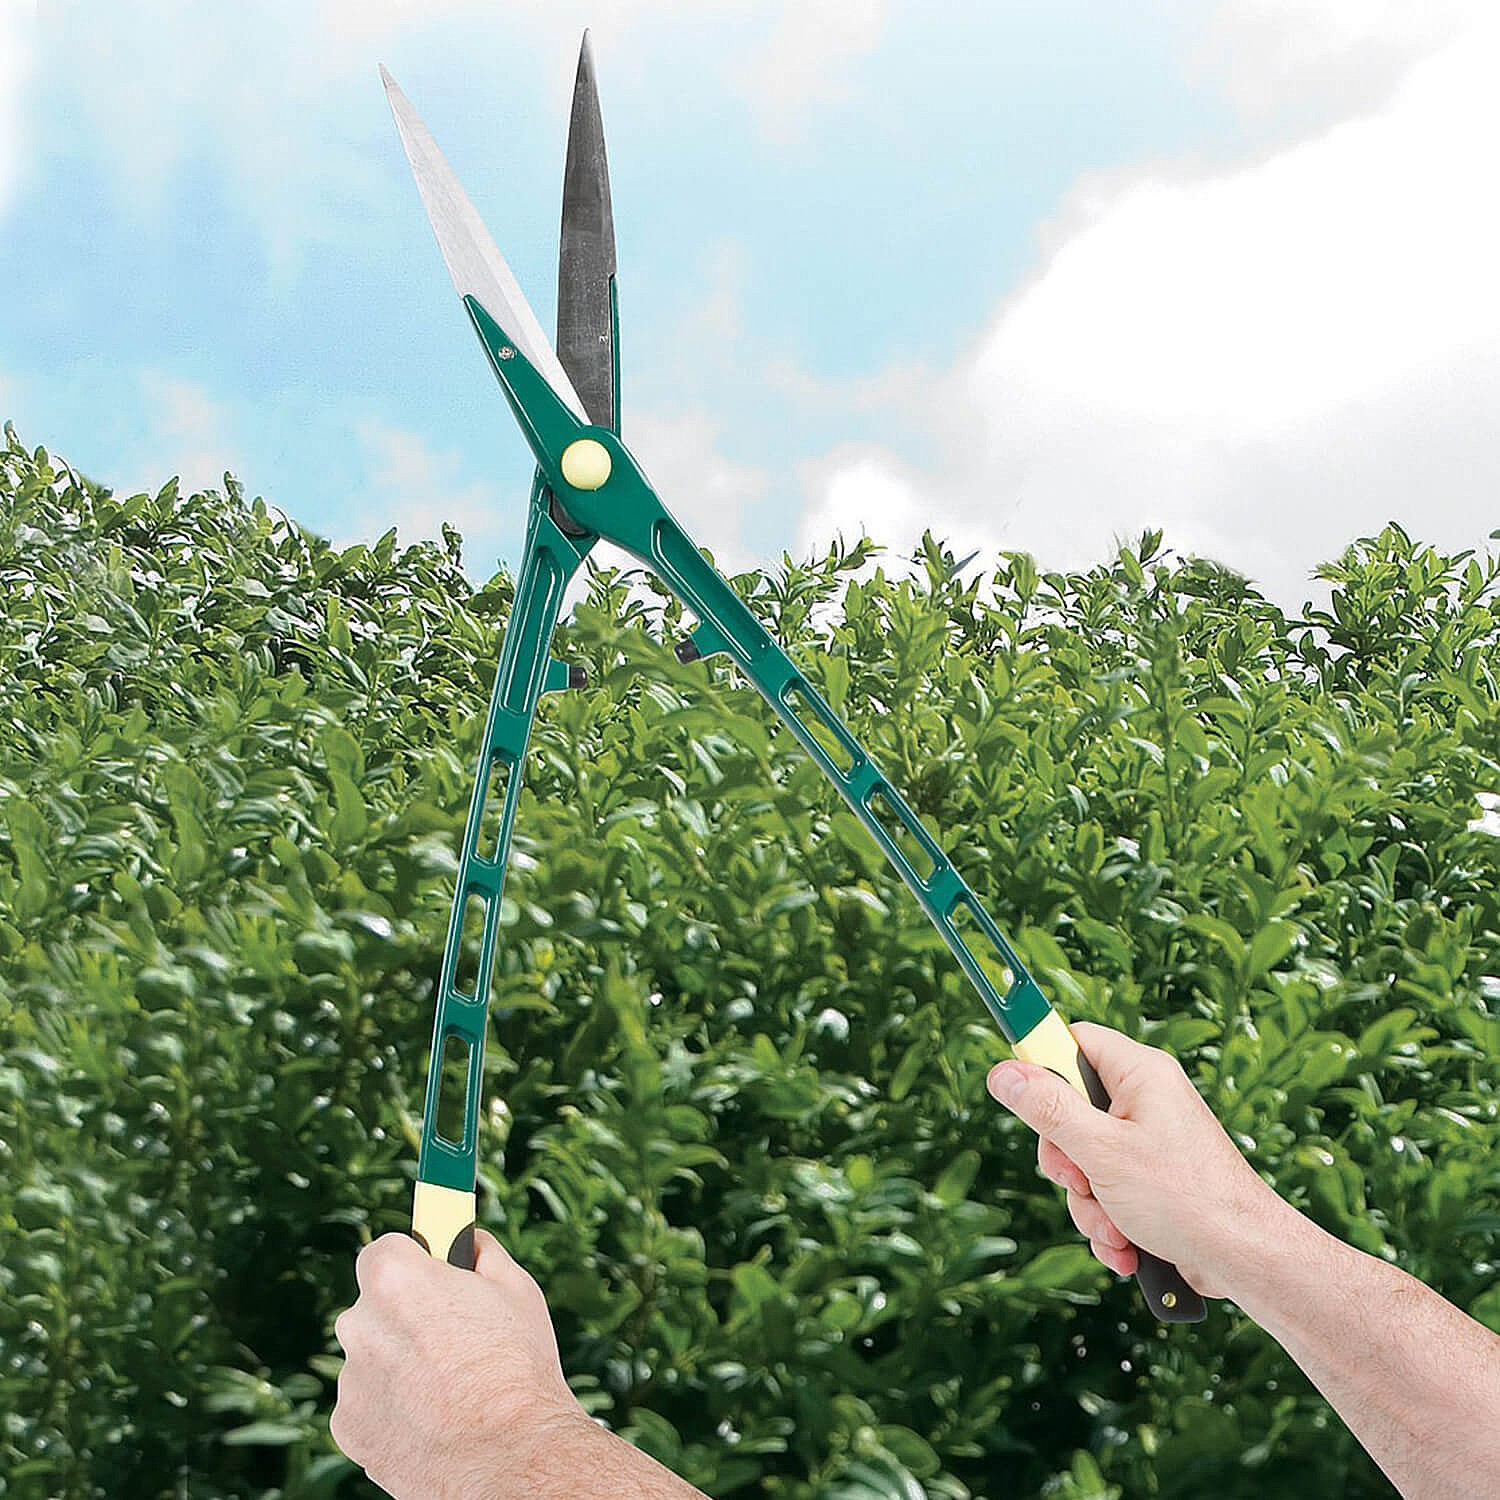 Coopers of Stortford Super lightweight Hedge Shears from Coopers